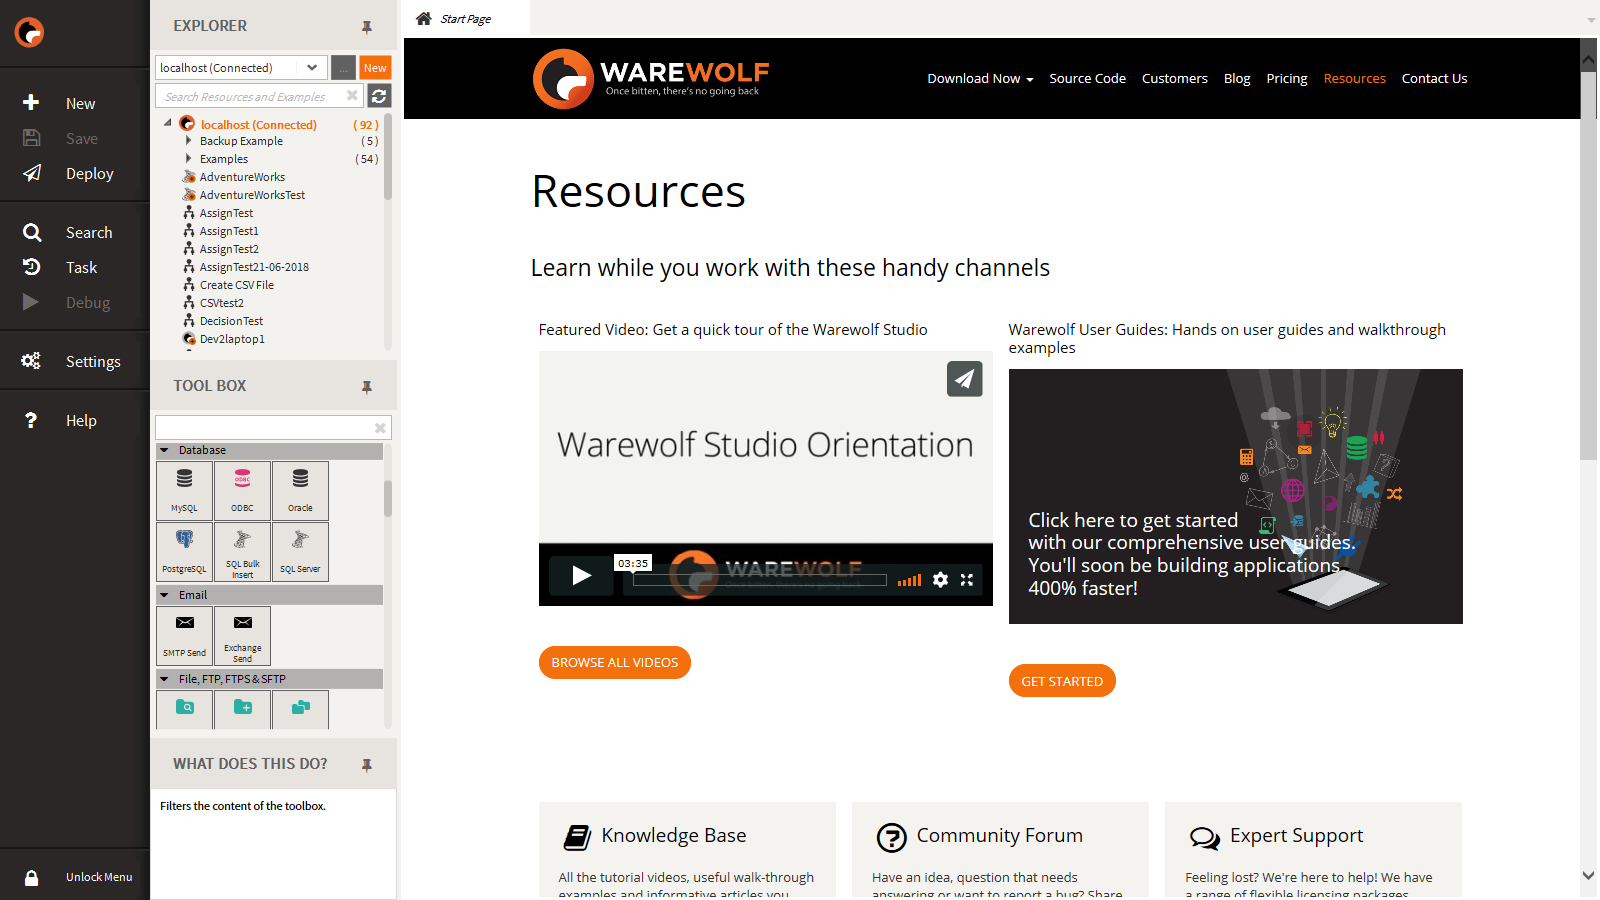 Warewolf Demo - Welcome to the Warewolf Studio